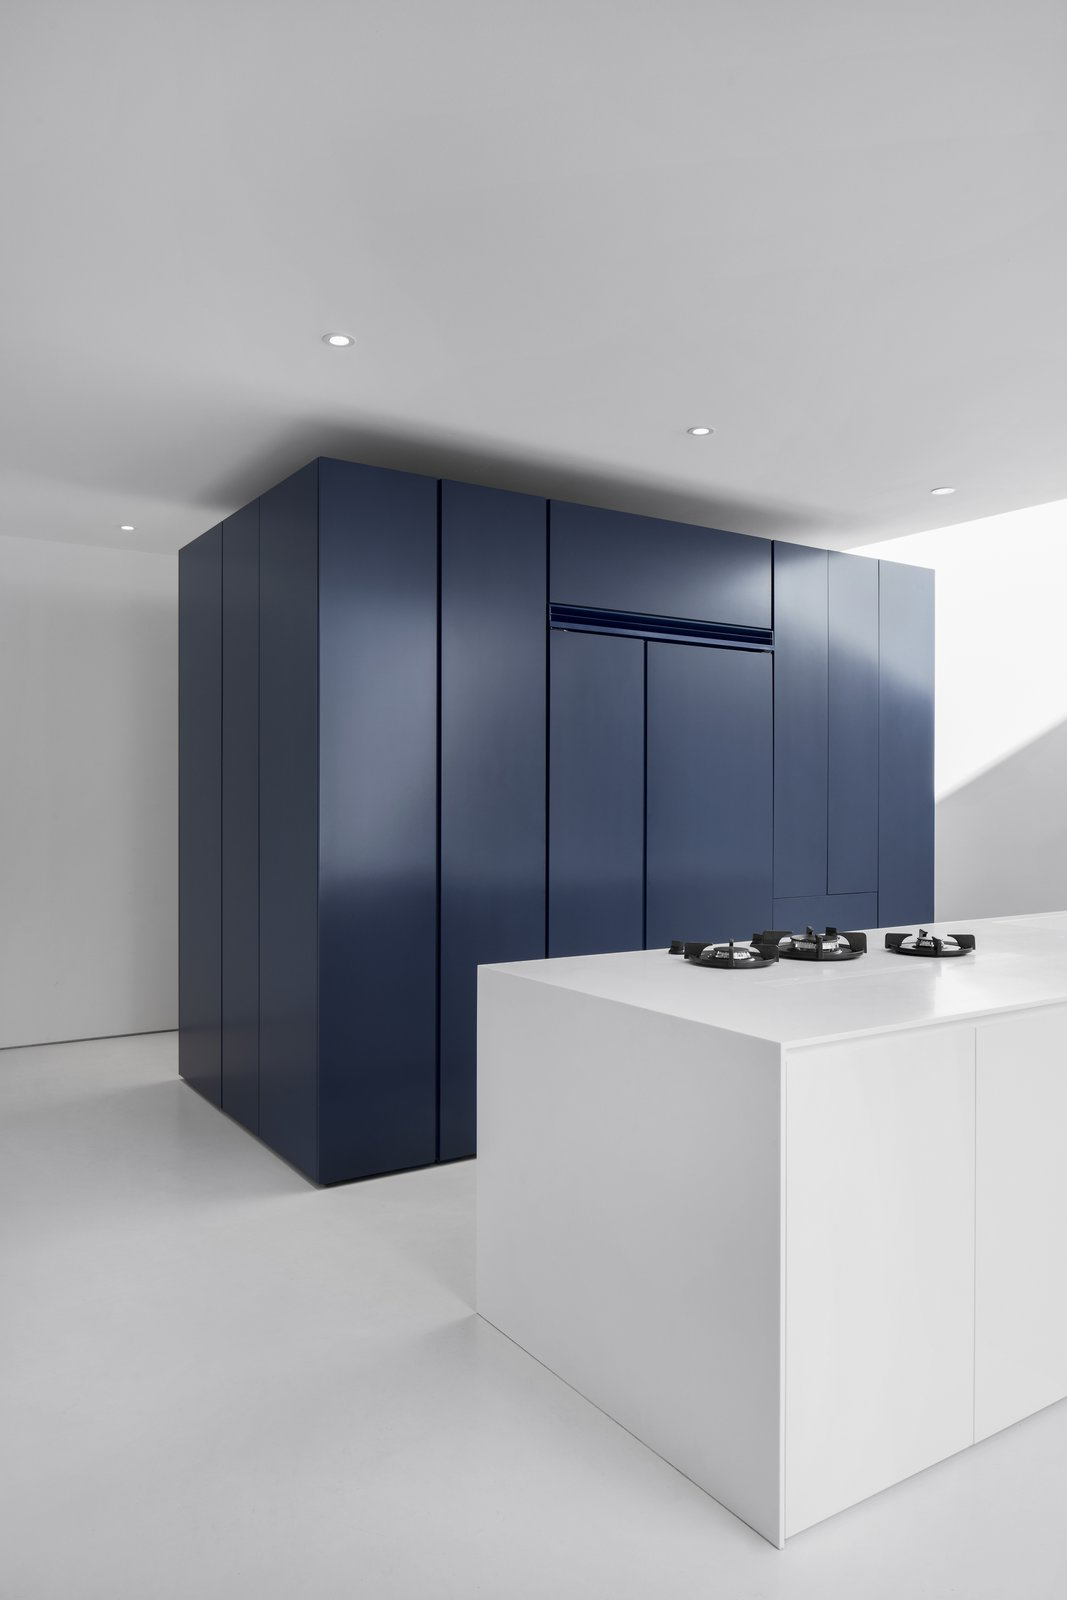 Kitchen, Painted Wood, Undermount, Colorful, Cooktops, Ceiling, and Refrigerator A dark blue block is the central pole of the kitchen area. Deposited directly on the floor, its periphery creates a zone of circulation.  Best Kitchen Undermount Painted Wood Photos from The House on Drolet Street